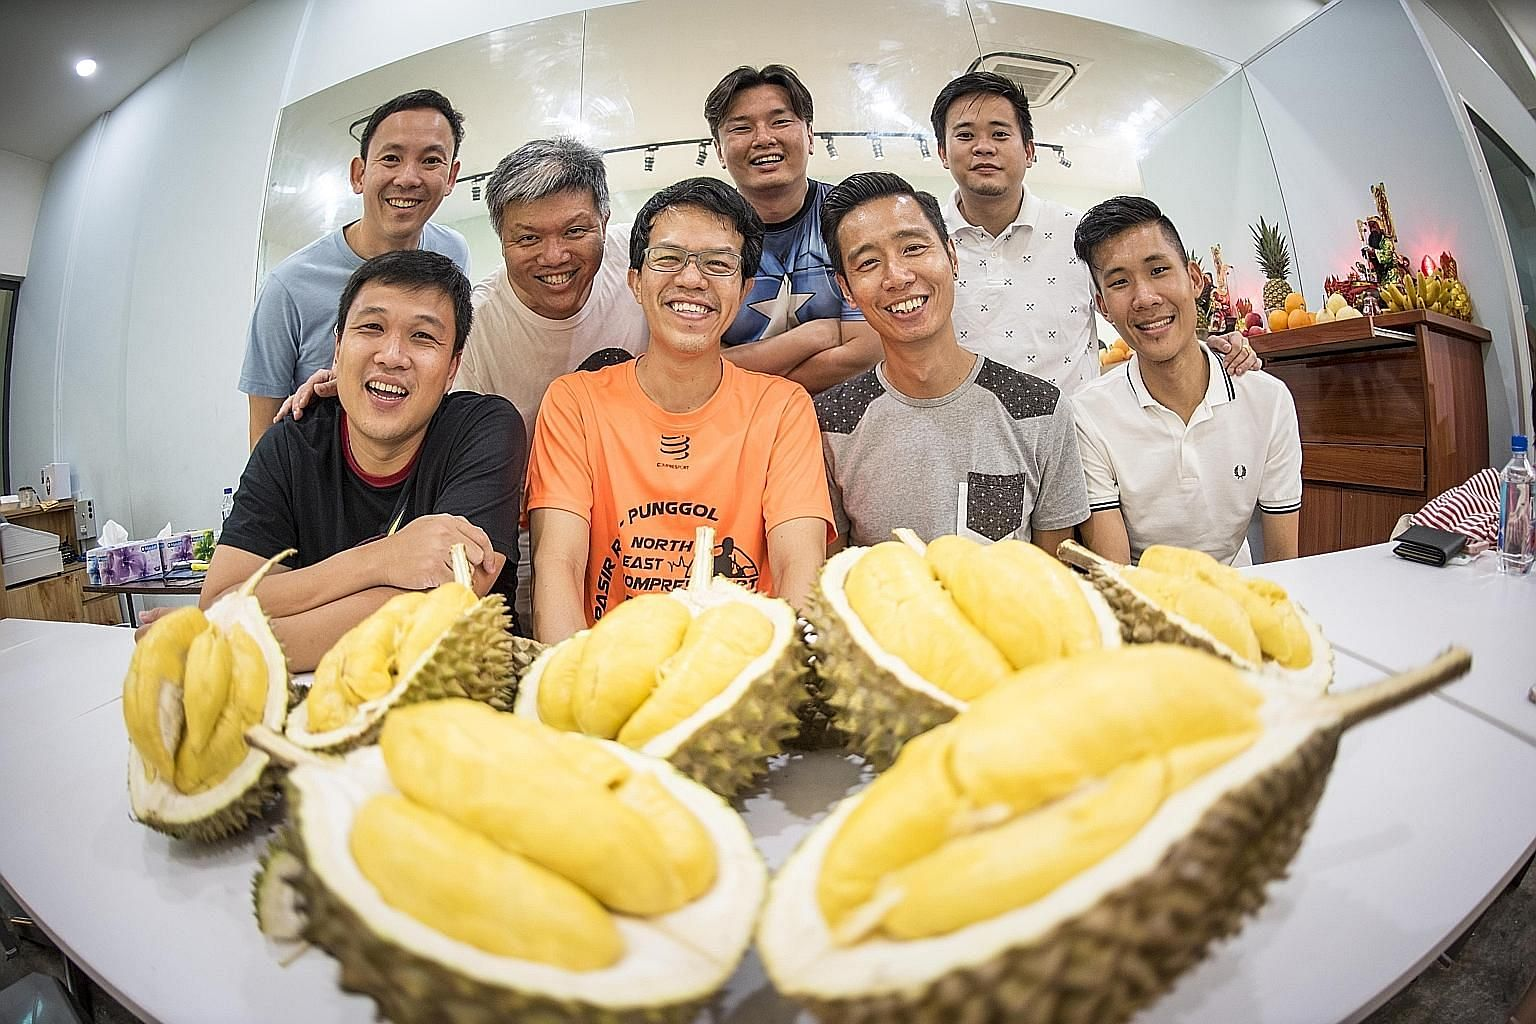 (Clockwise from top left) Centre for Fathering chief executive officer Bryan Tan and other Daddy Matters members David Sim, Winston Tay, Frederick Tang, Pan Quanfu, Isaiah Kuan, Andy Lee and Kelvin Ang at one of the Facebook group's meet-ups last yea